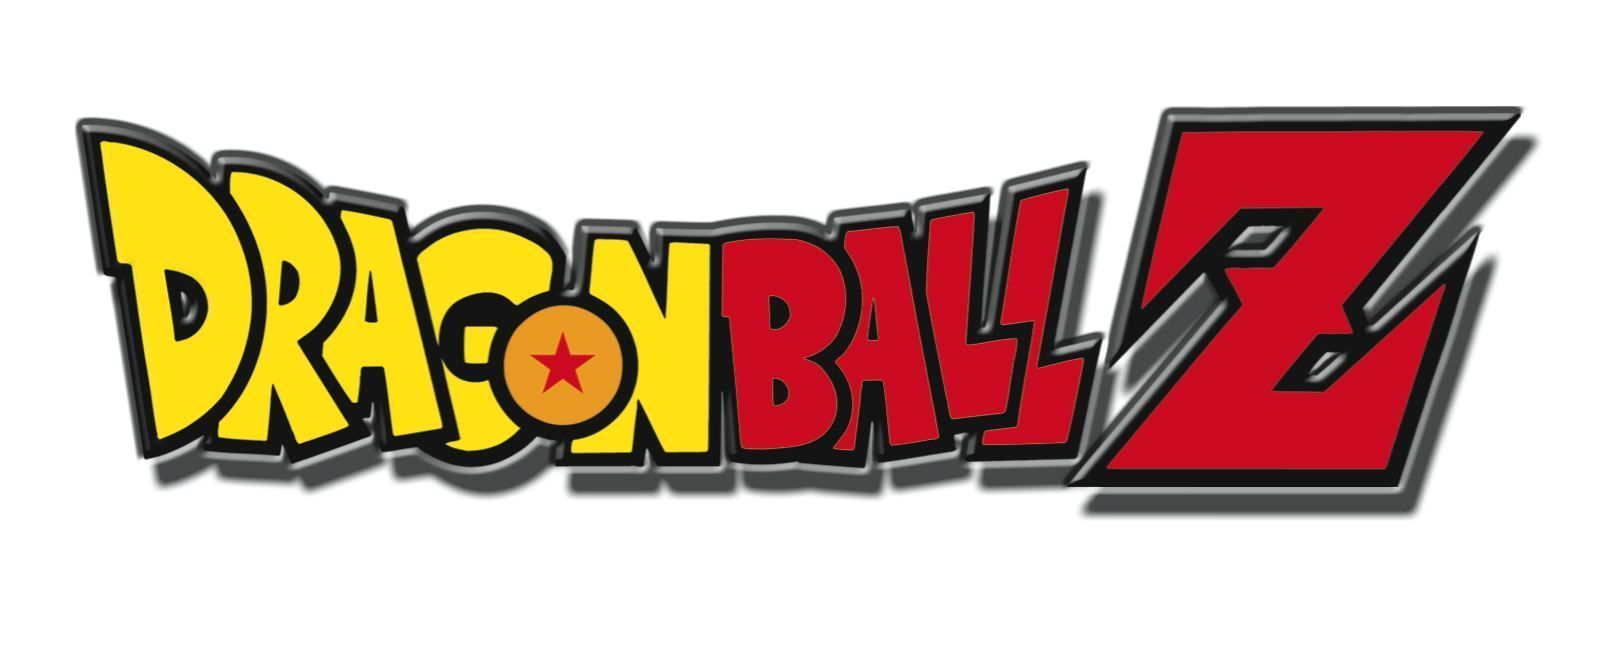 Todo sobre Dragon Ball Z